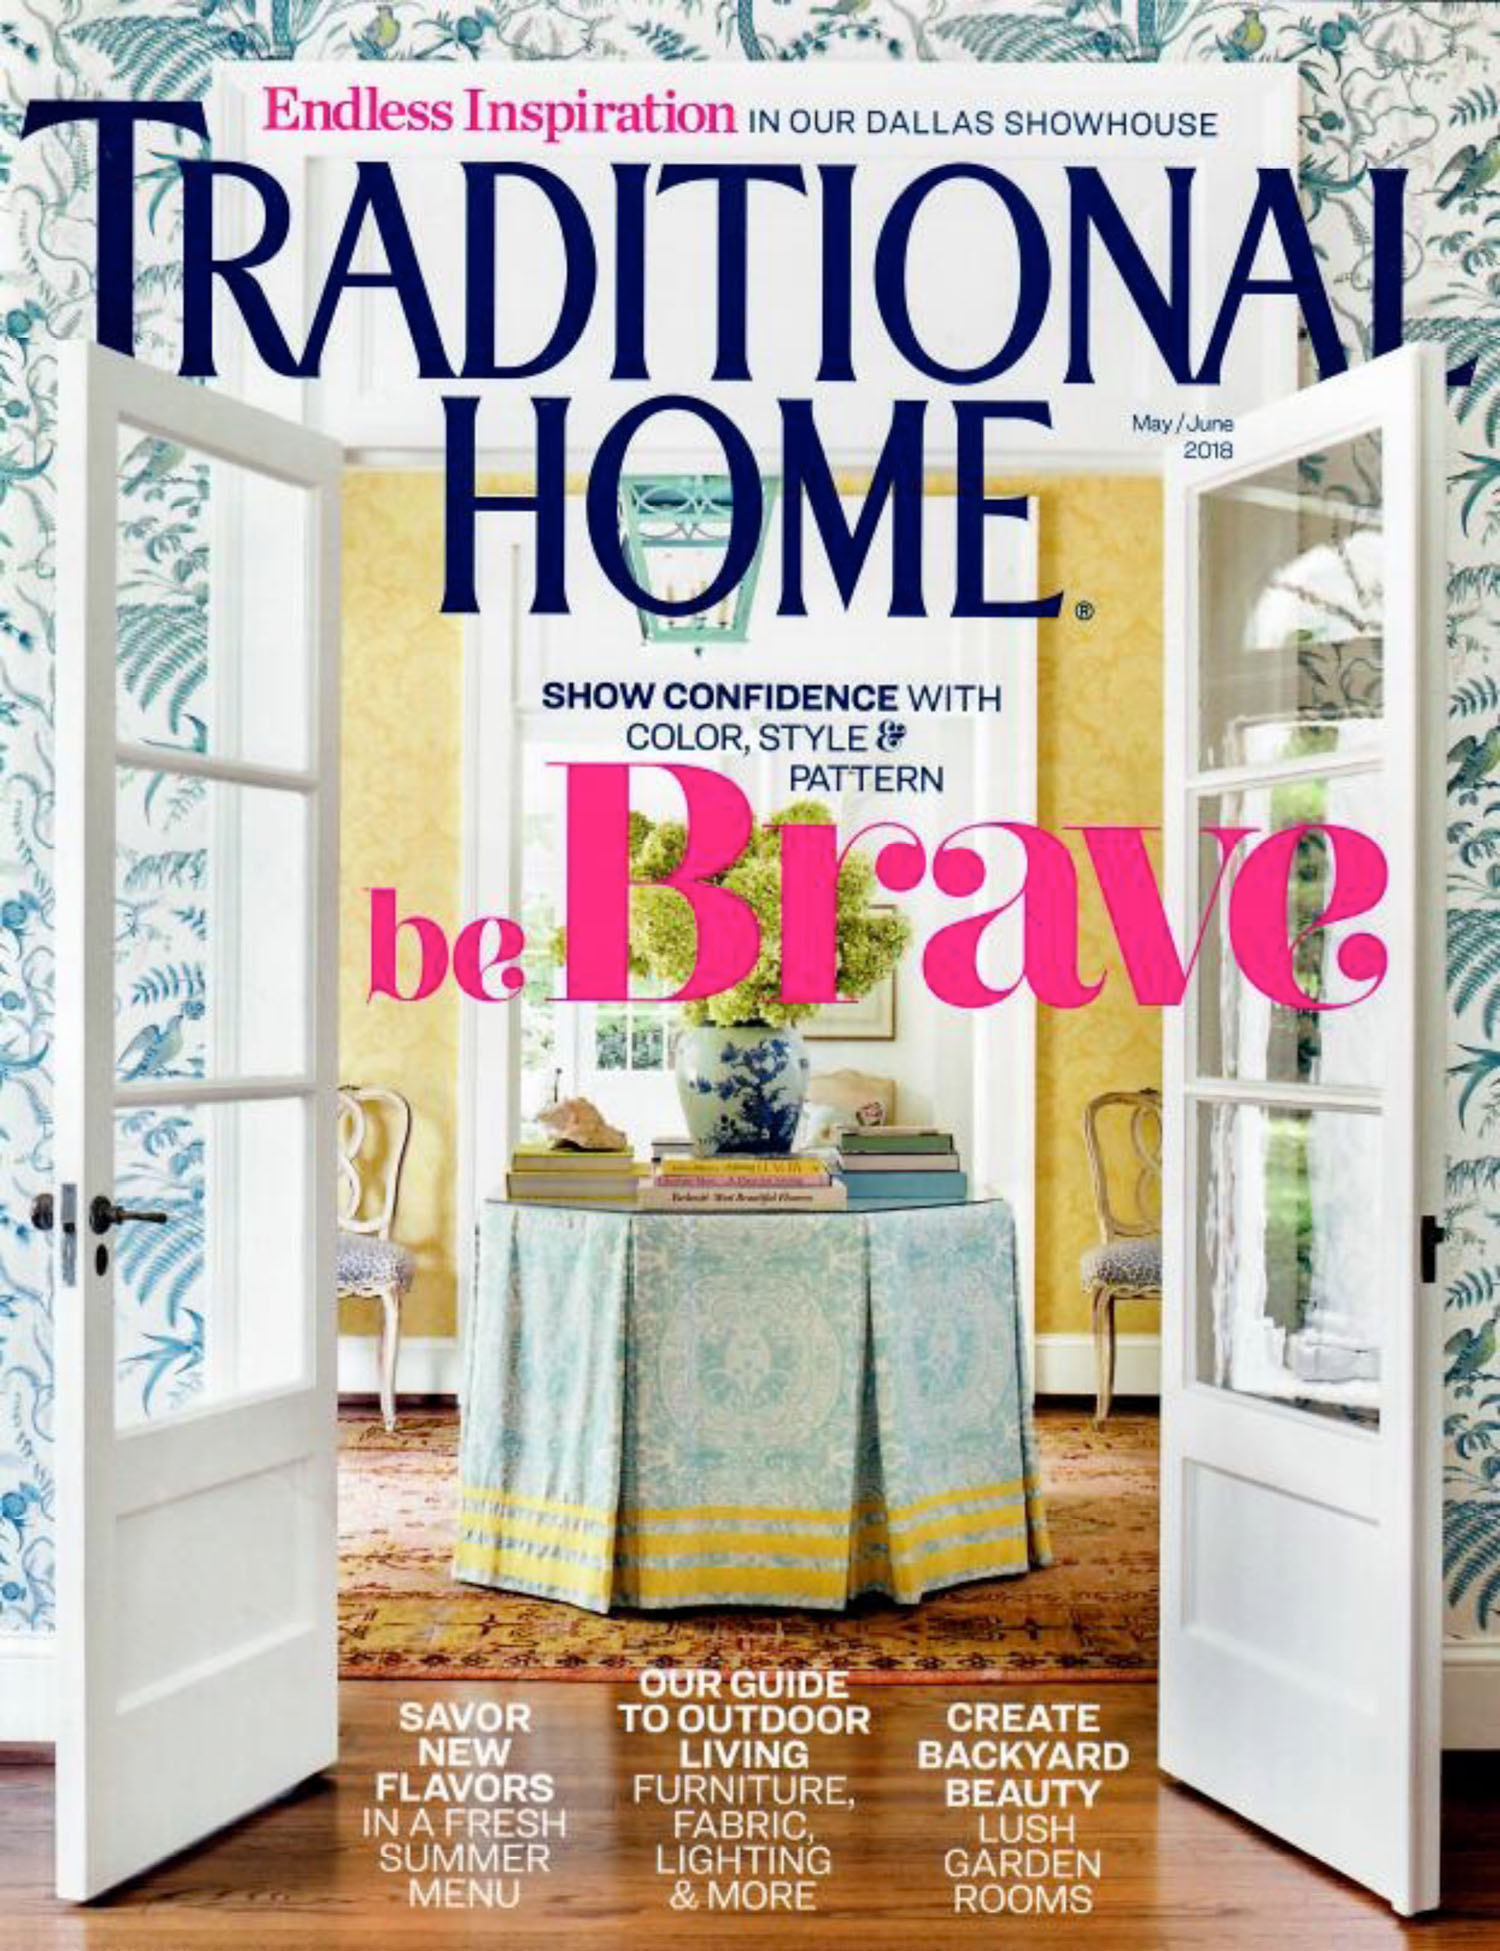 Traditional Home May/June 2018